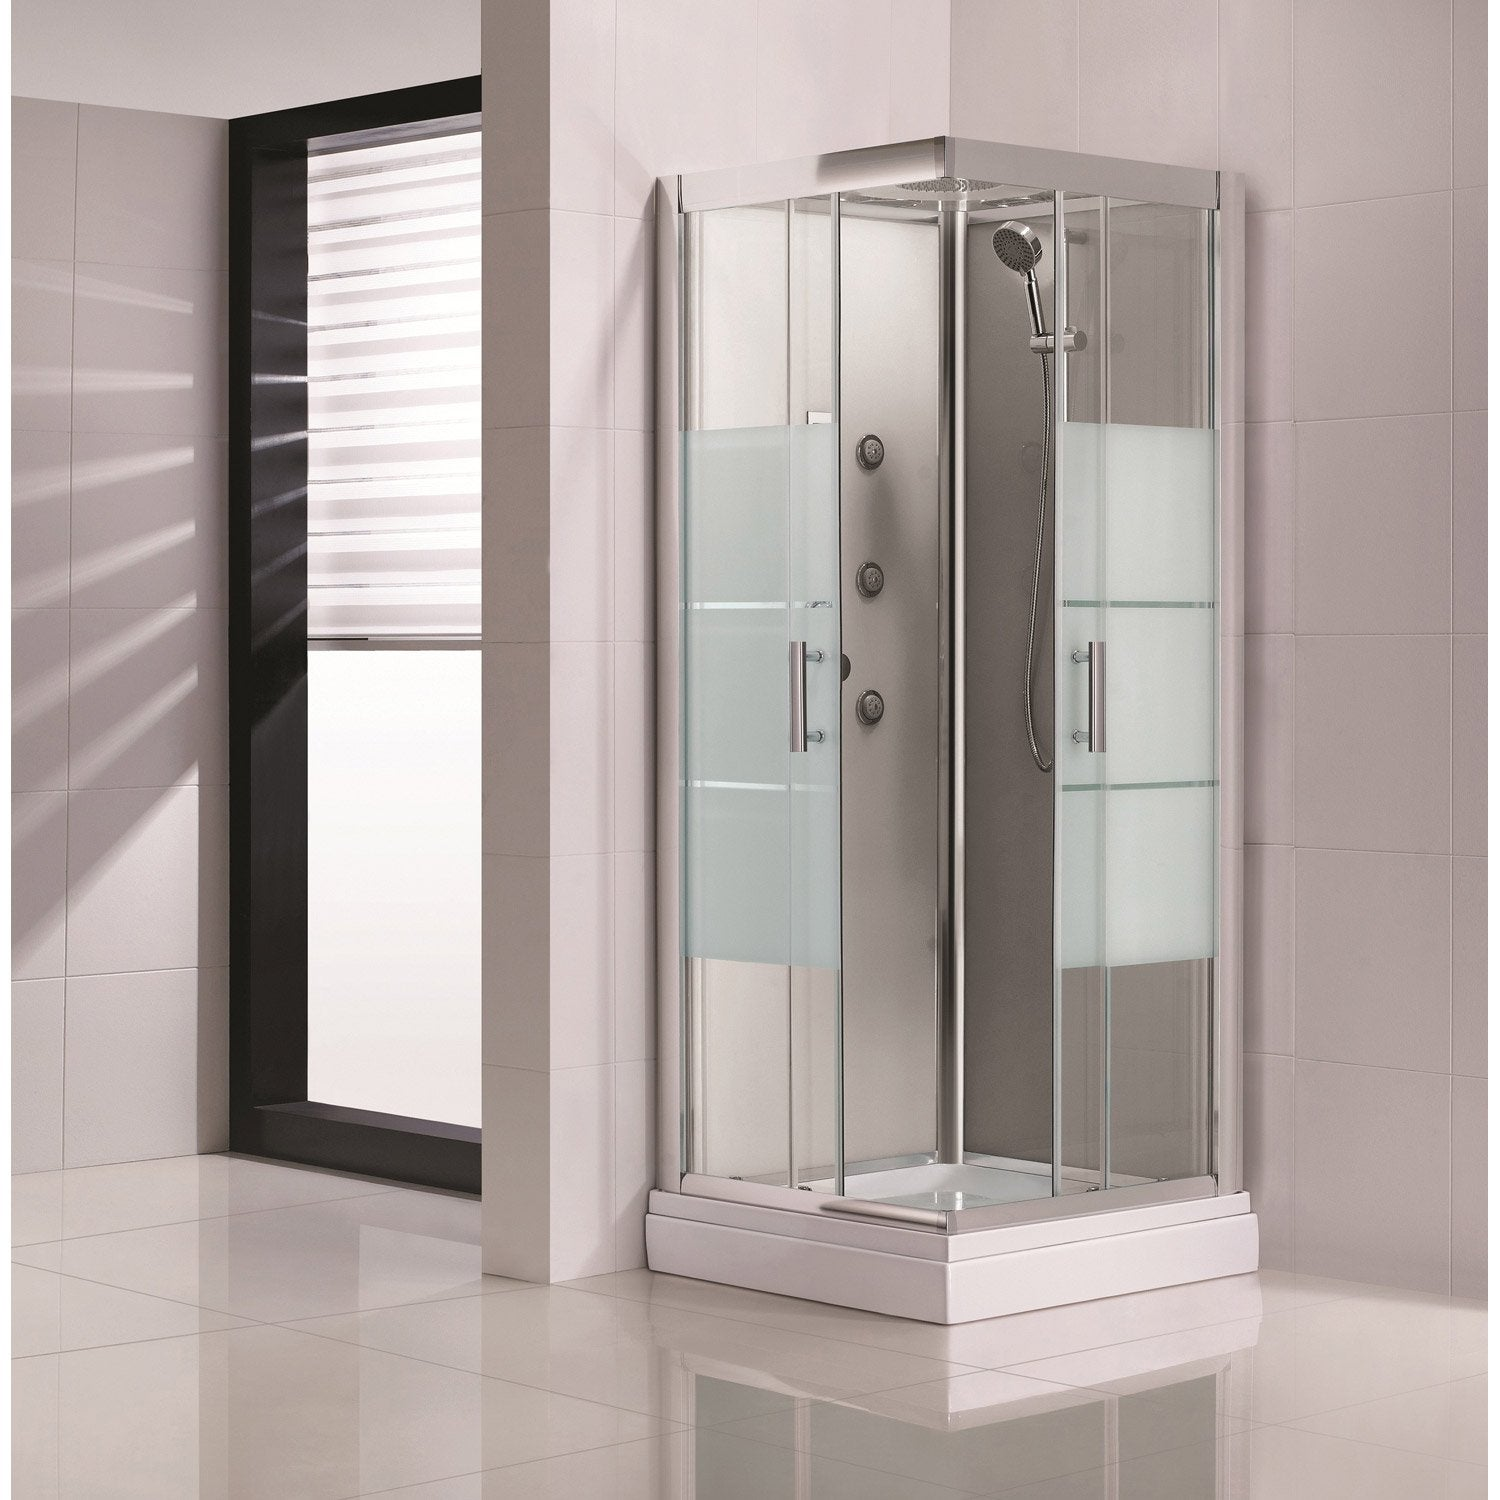 Cabine de douche carr 90x90 cm optima2 grise leroy merlin for Tende per doccia leroy merlin